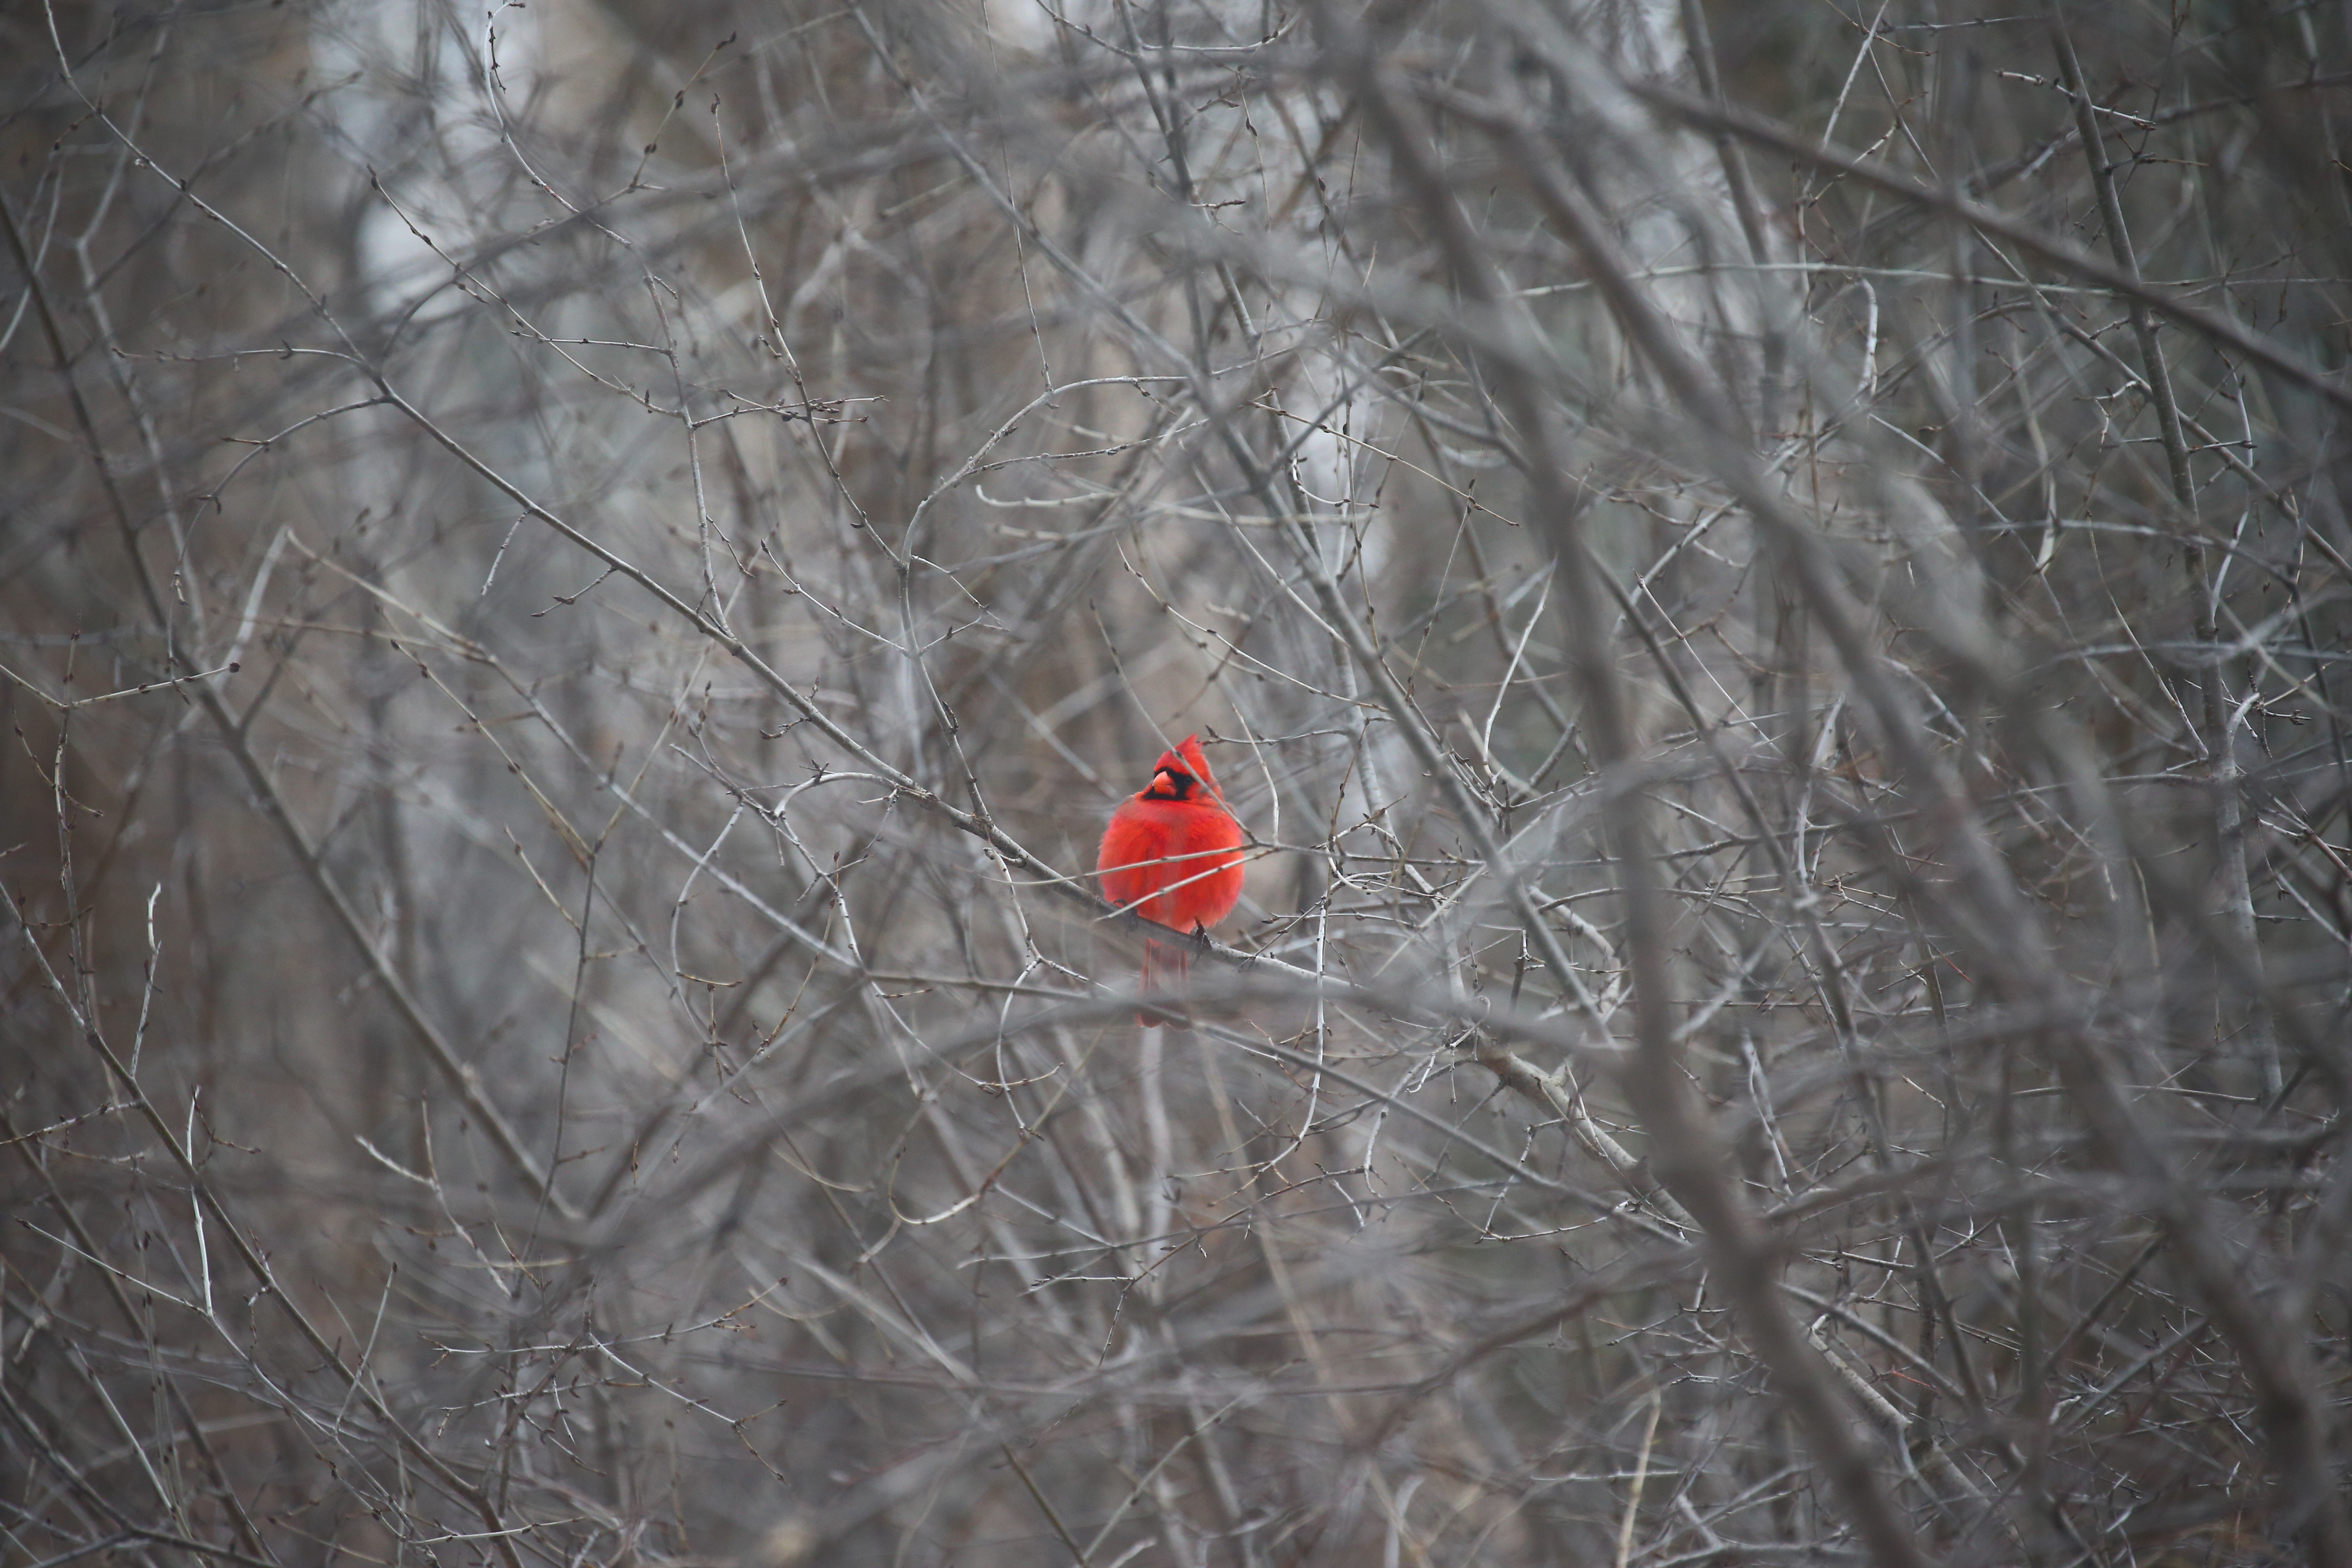 A bright red cardinal stands out among the leafless trees at Tifft Nature Preserve in Buffalo on March 20. (John Hickey/News file photo)